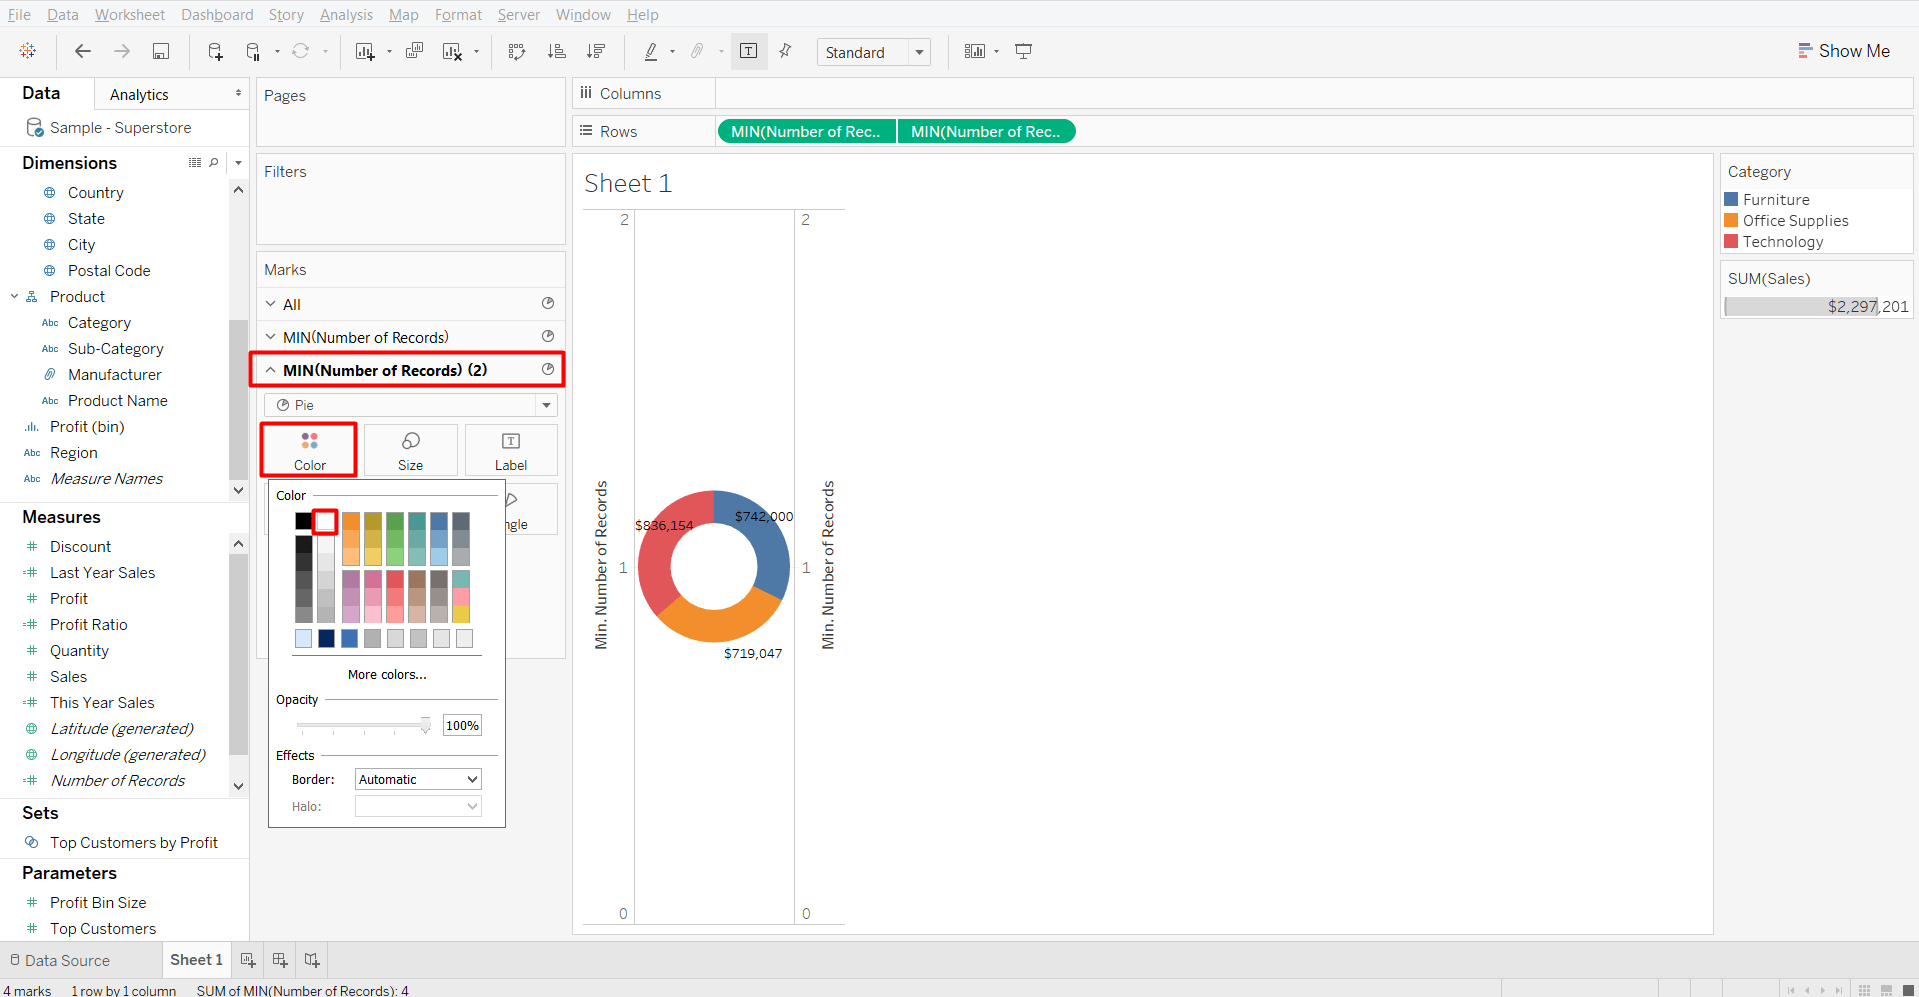 How To Make A Donut Chart In Tableau